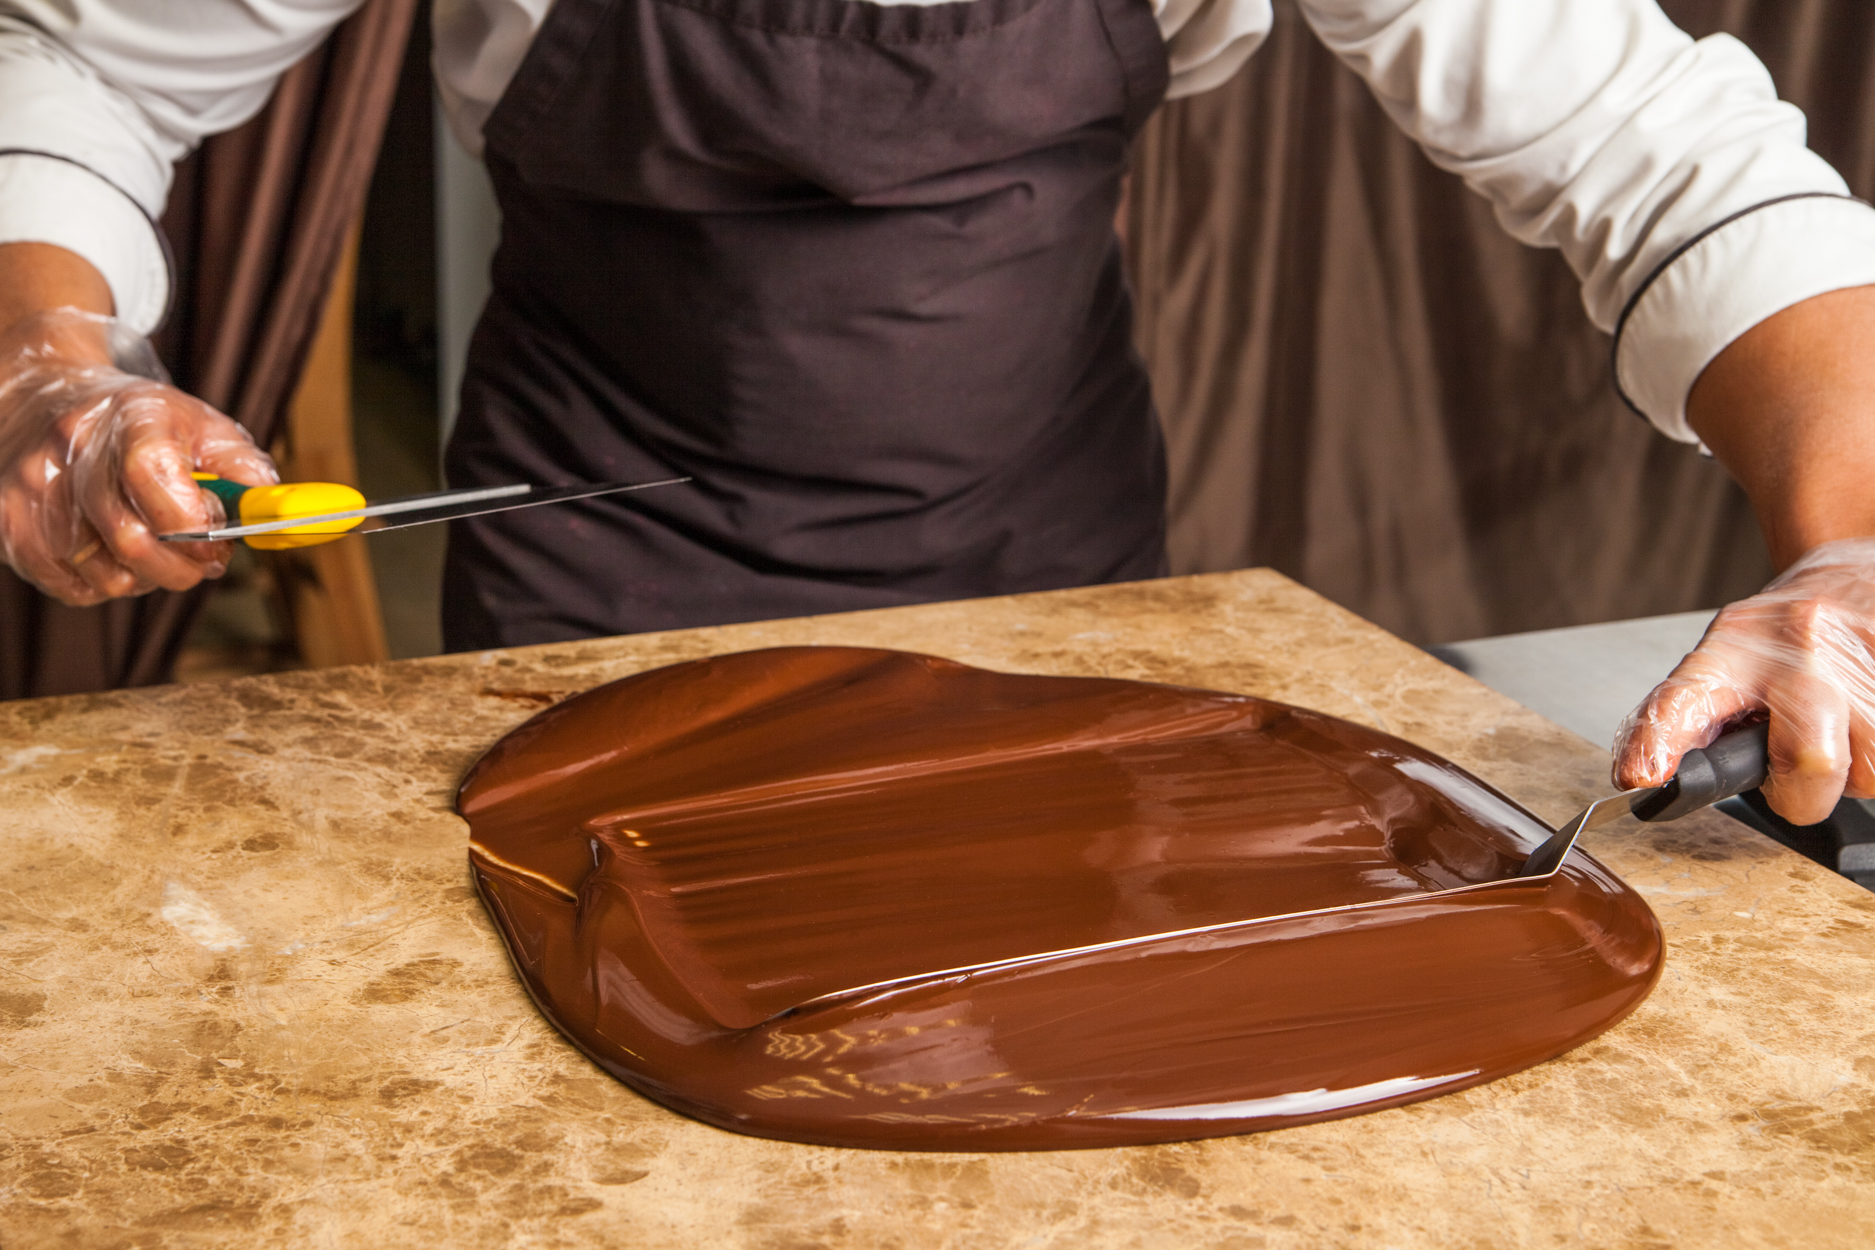 The Art of Tempering Chocolate